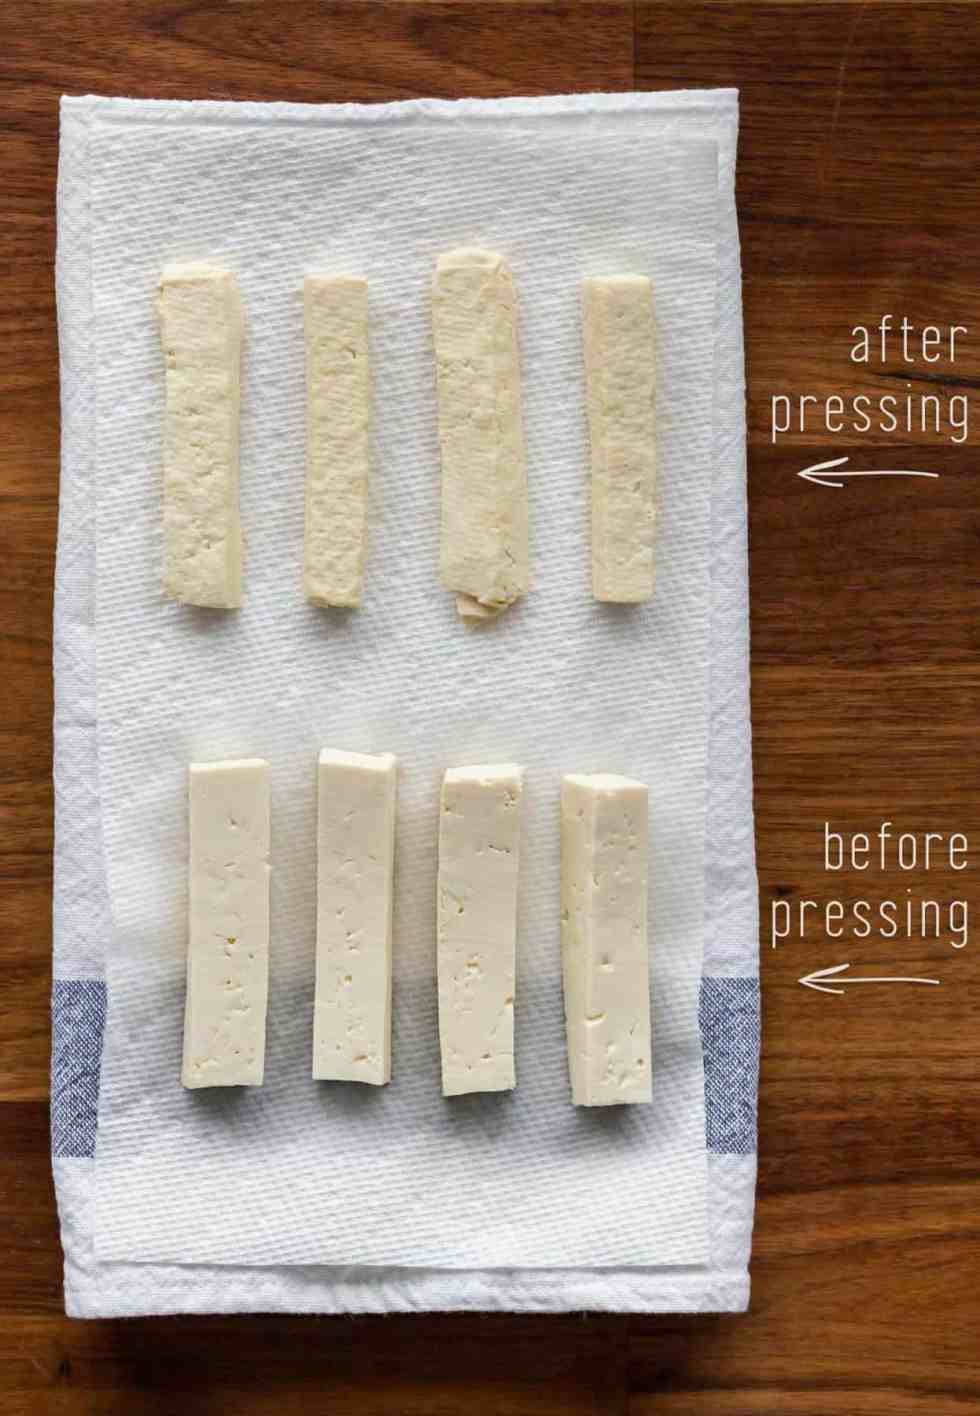 Medium-firm tofu cut into rectangles laying on a kitchen towel. Top row shows pressed tofu (dry to the touch and barely beginning to crumble). Bottom row shows silky, unpressed medium-firm tofu.